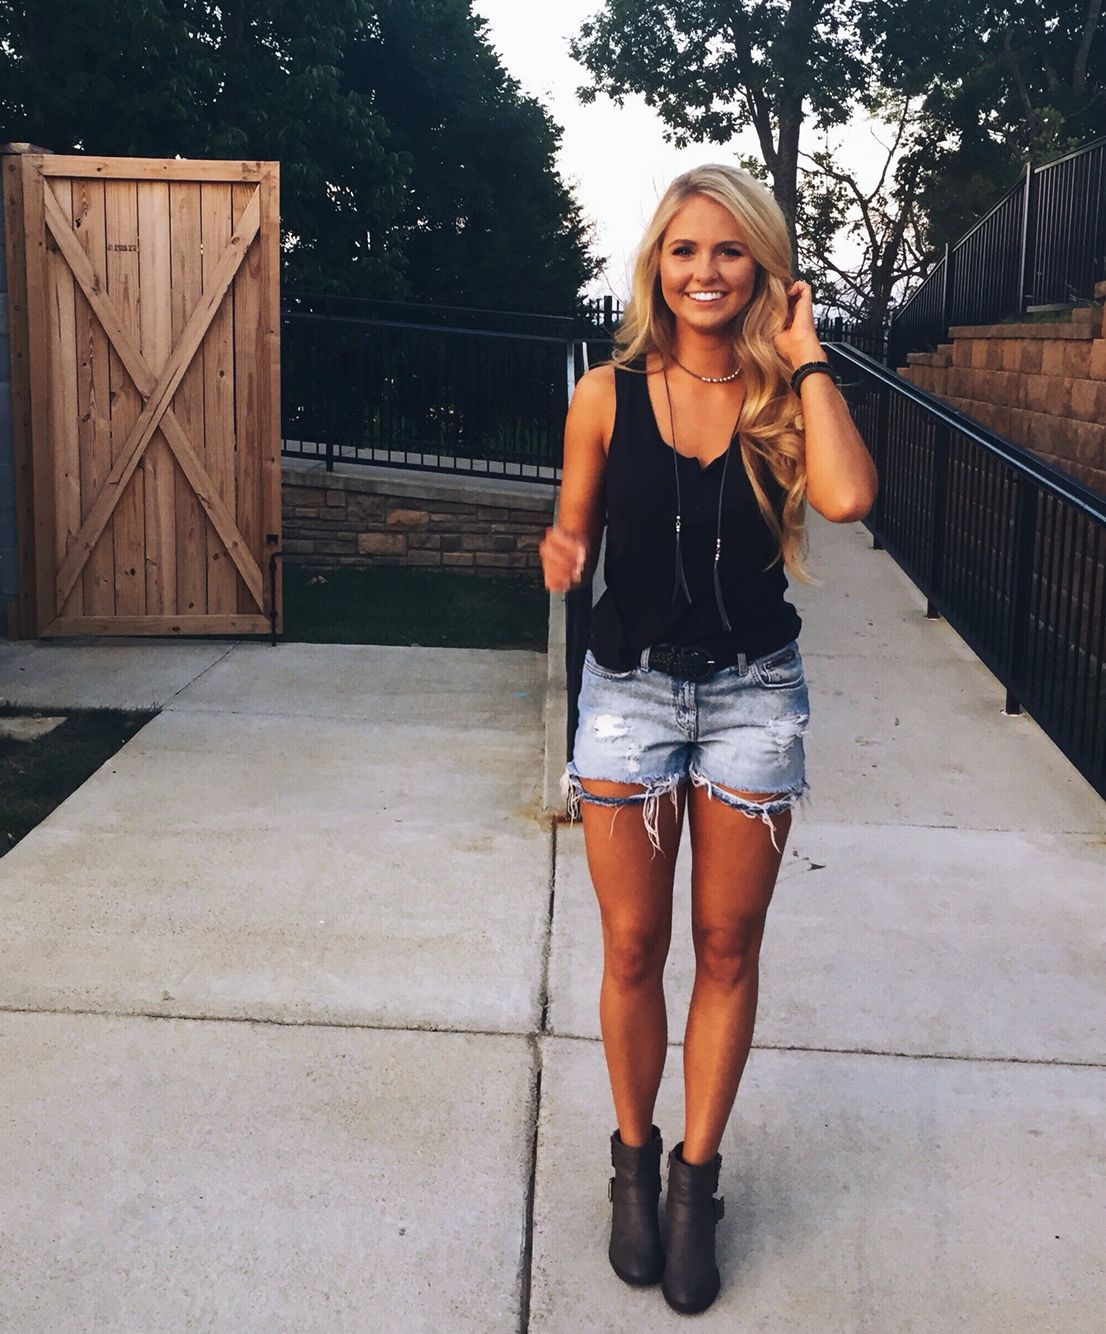 Concert Style Instagram Shealeighmills Daily Shealeigh